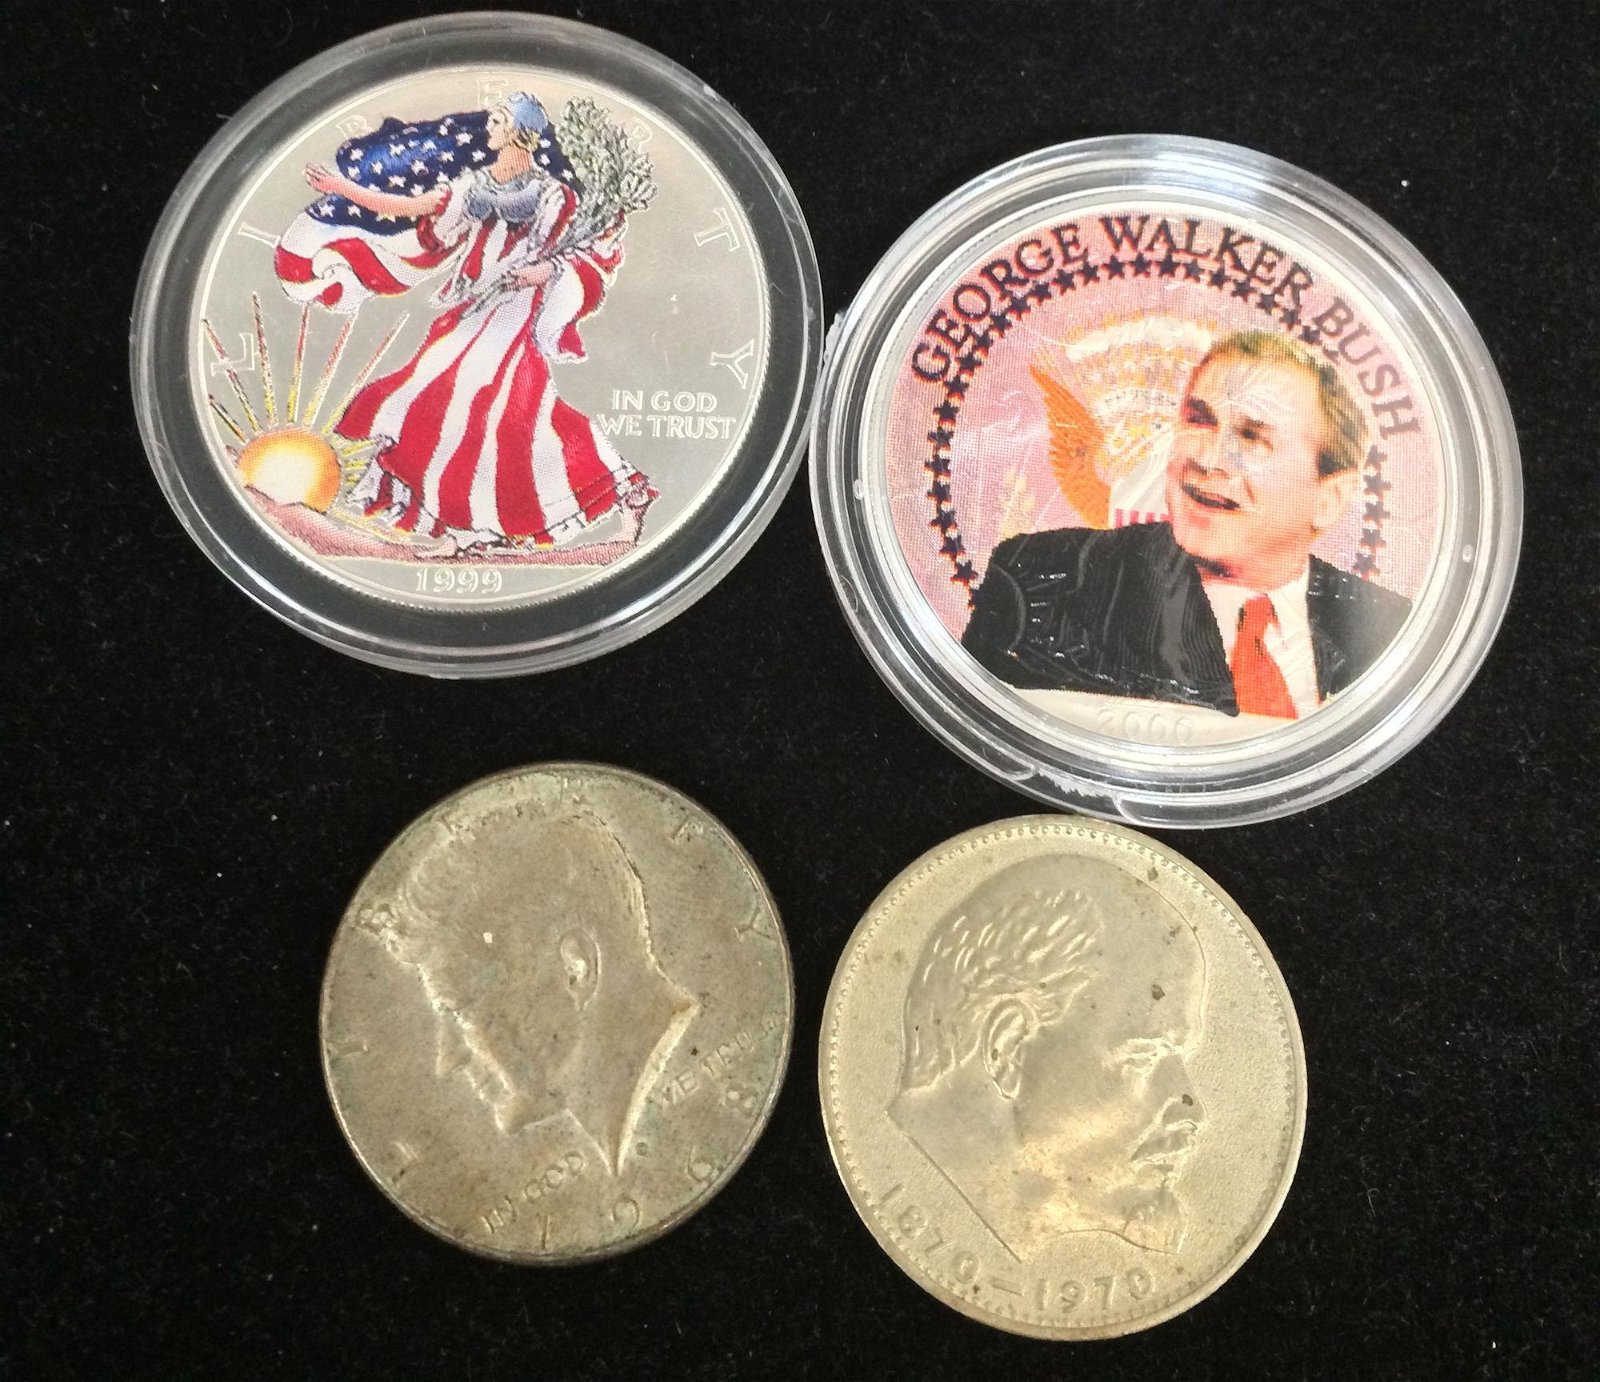 MIXED LOT INCLUDING 1999 AMERICAN SILVER EAGLE FULL